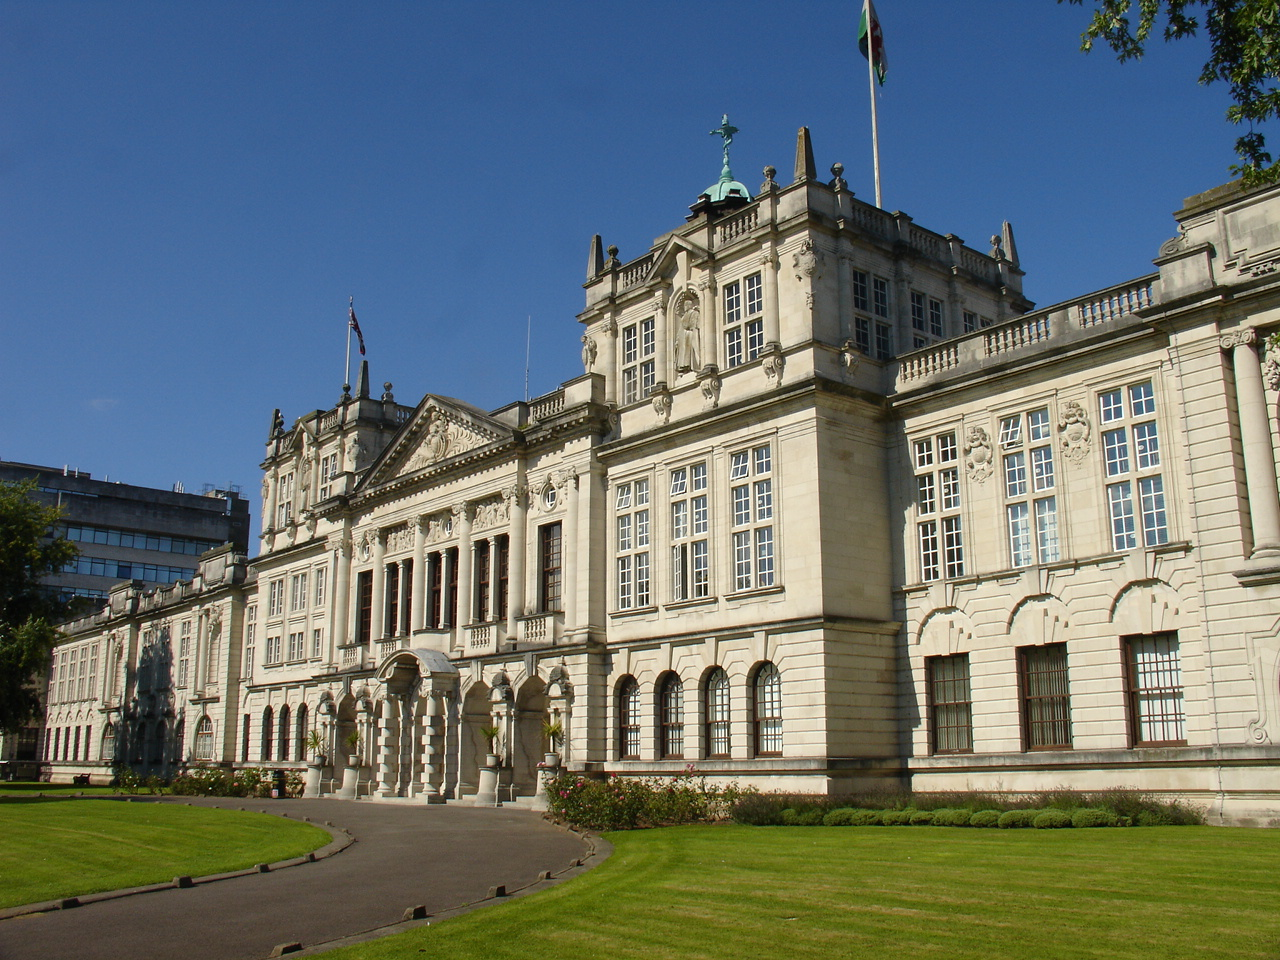 Description cardiff university main building